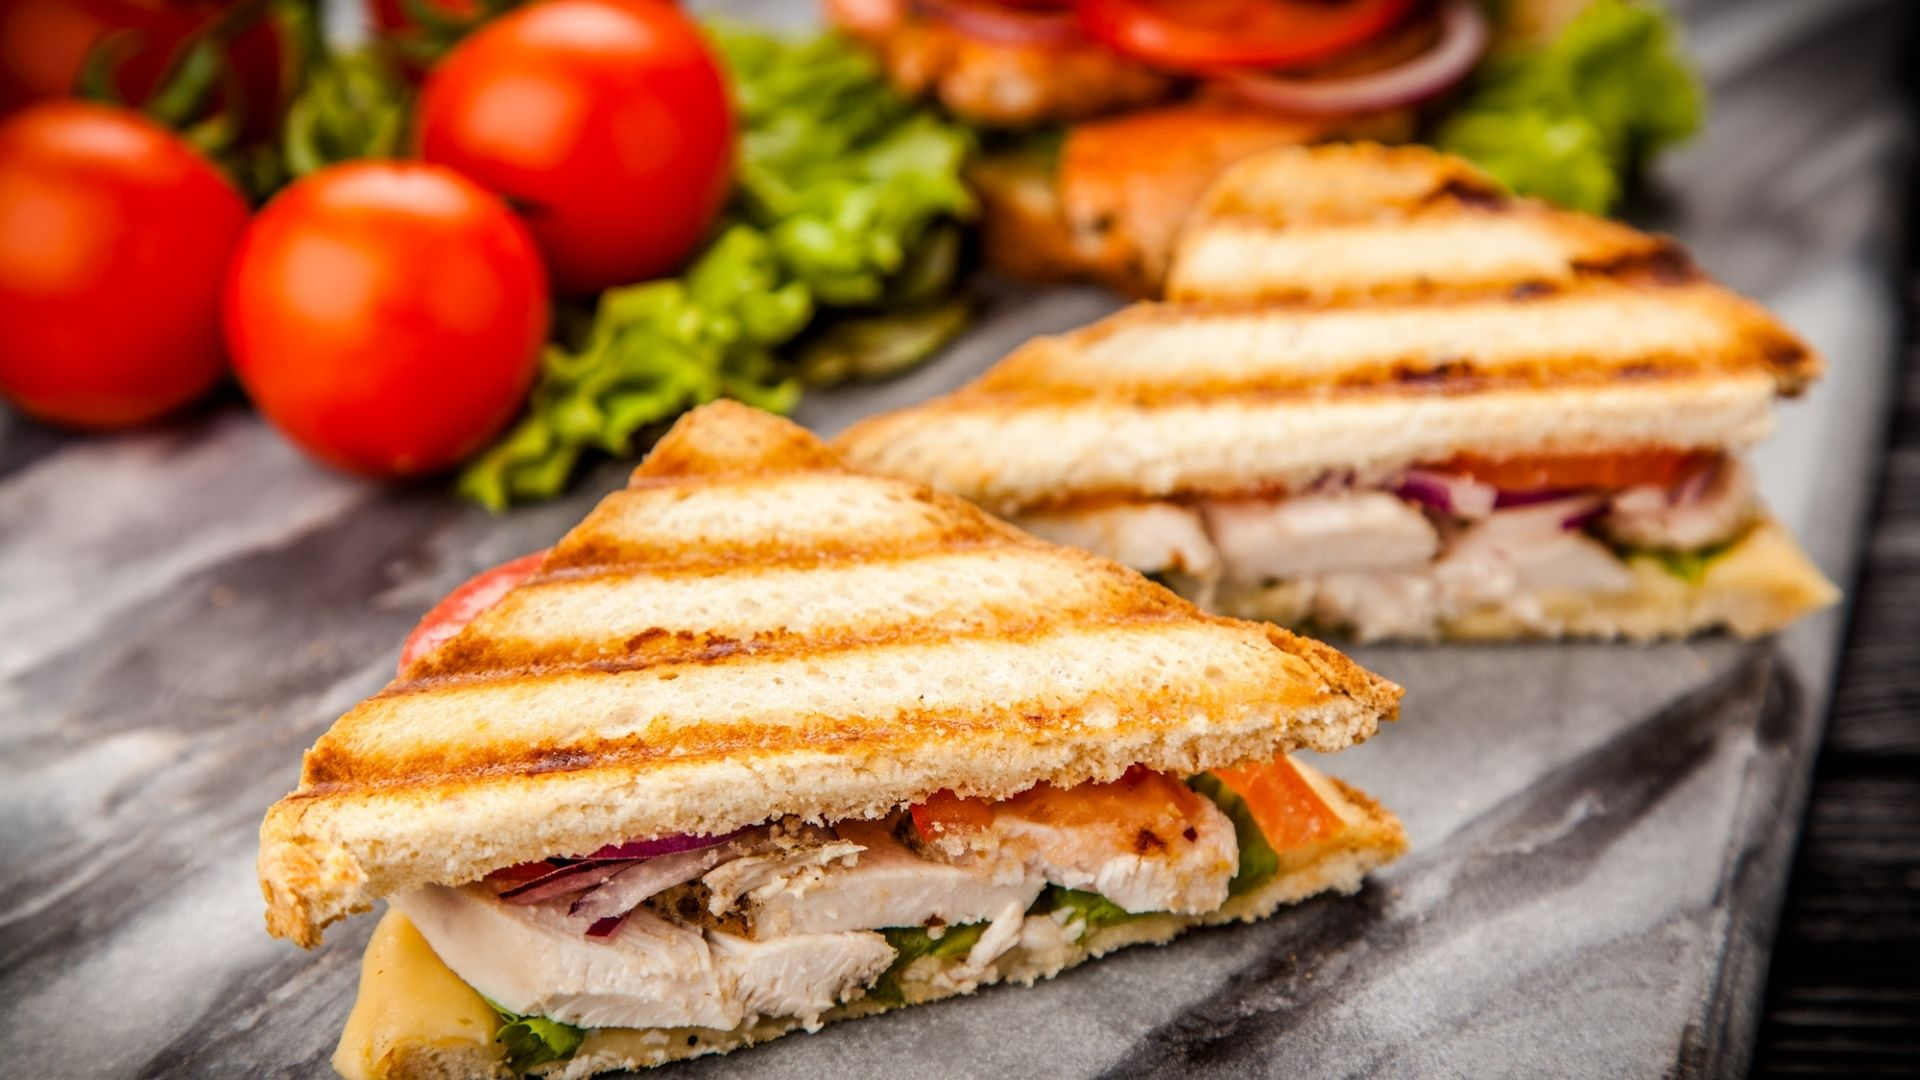 Featured Image for Chicken and Pesto Sandwich